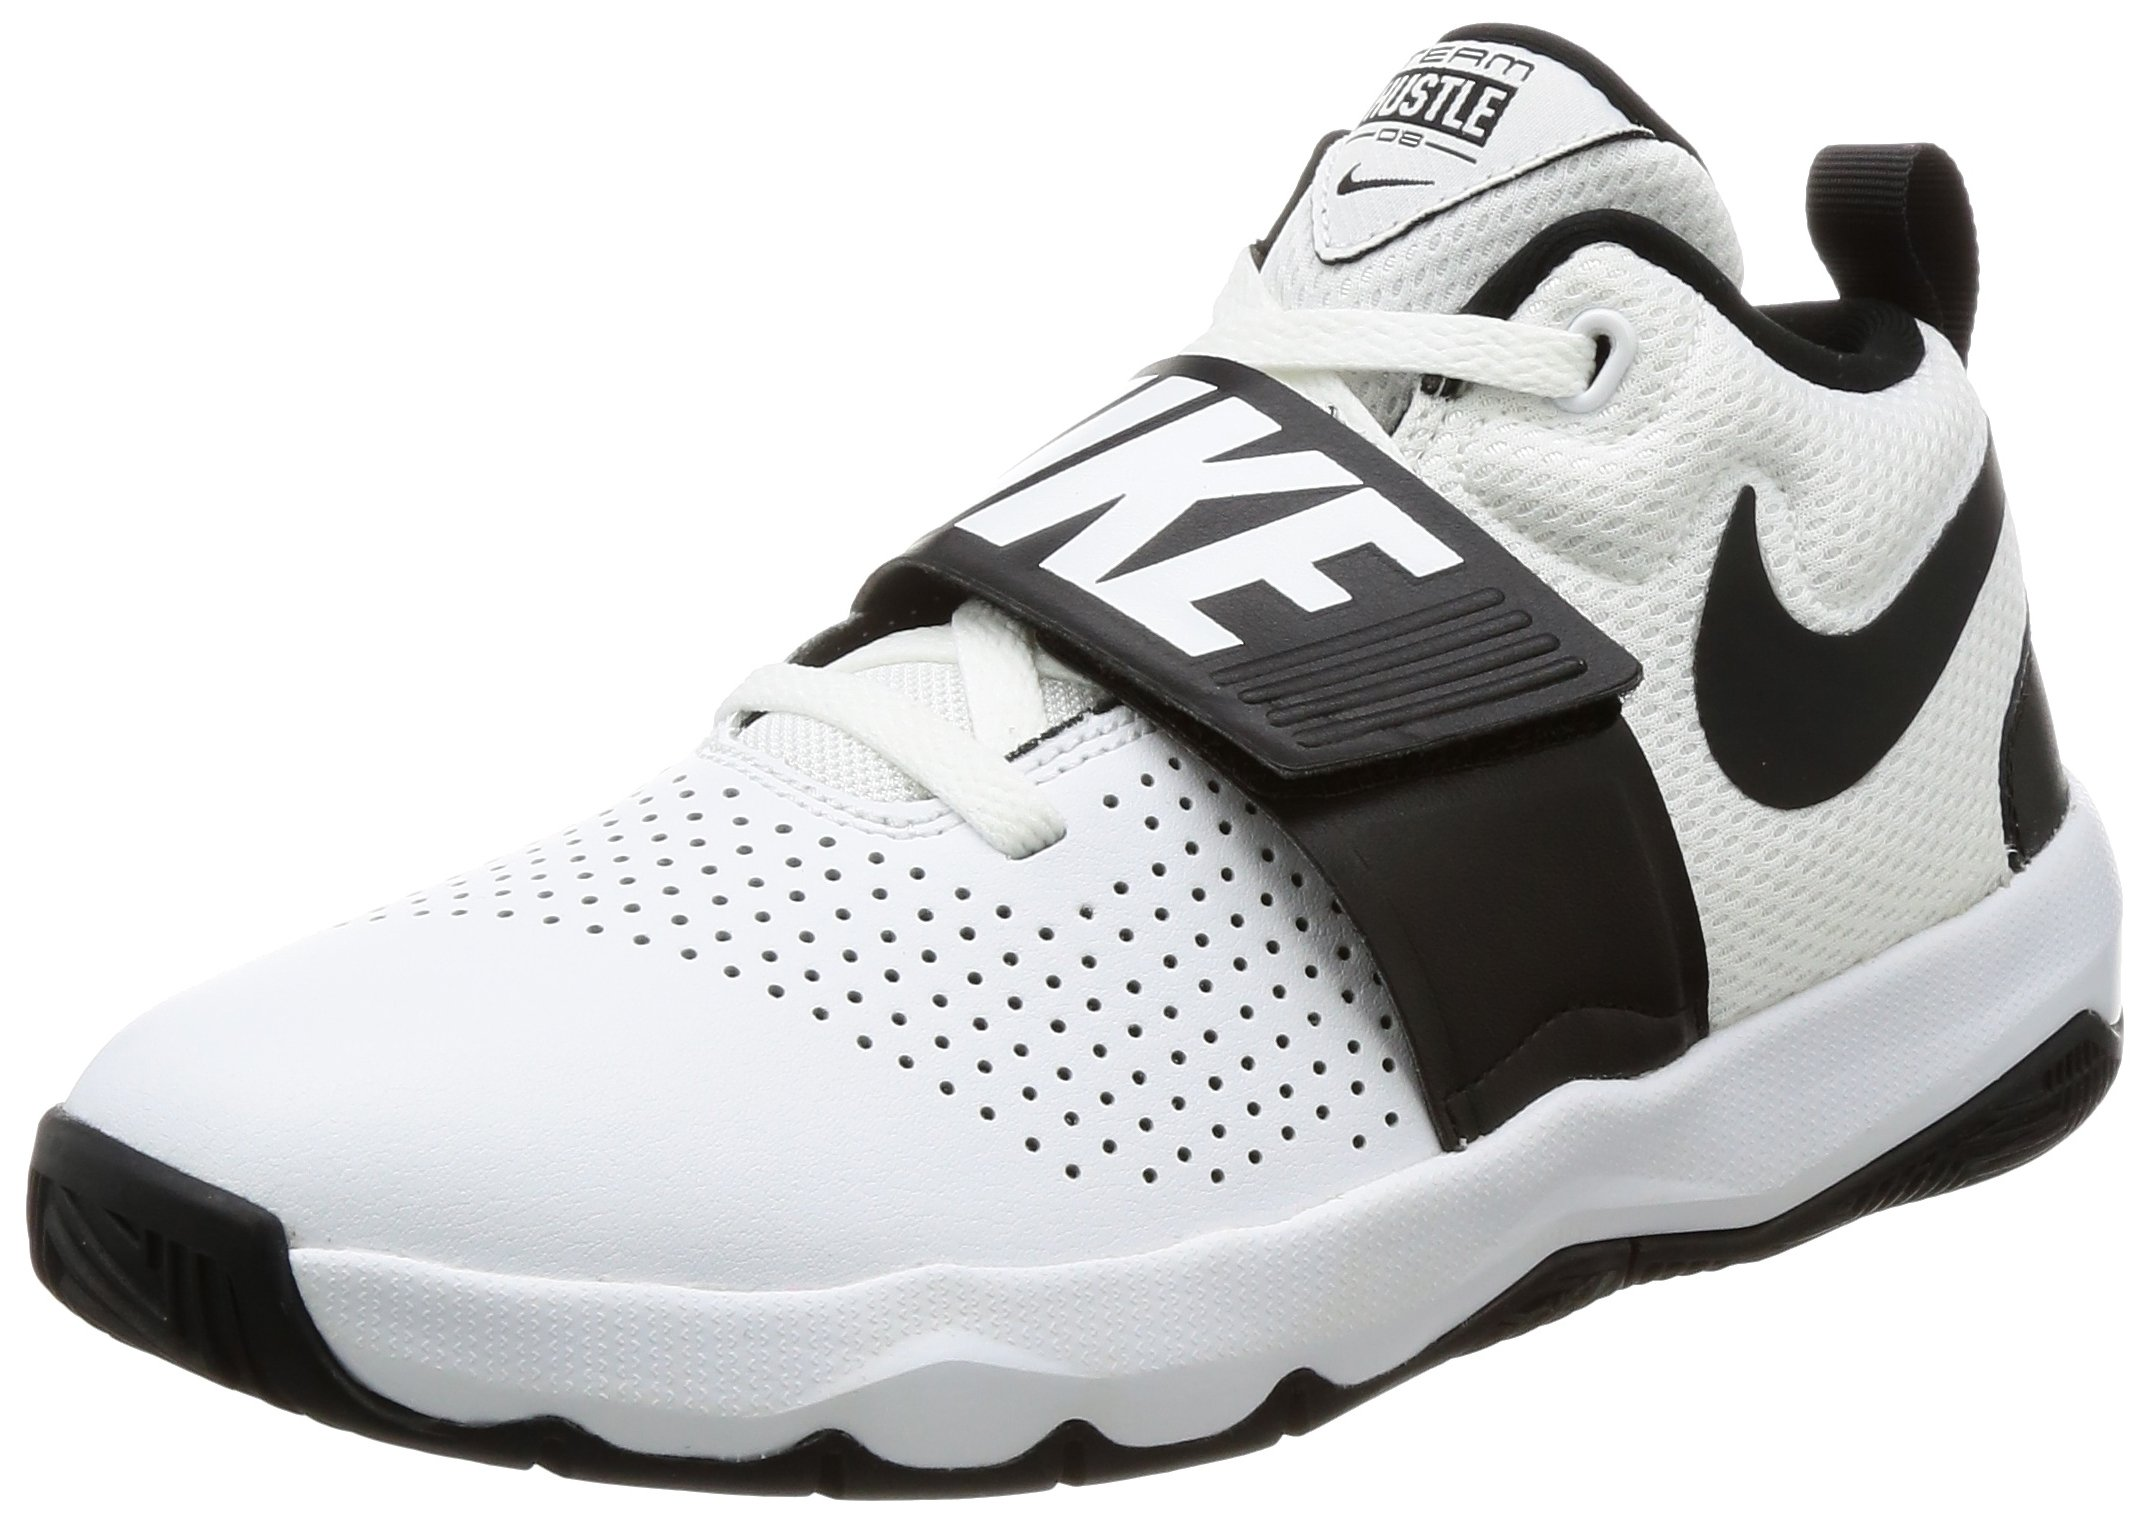 Nike Boys' Team Hustle D 8 (GS) Basketball Shoe, White/Black, 6Y Regular US Big Kid